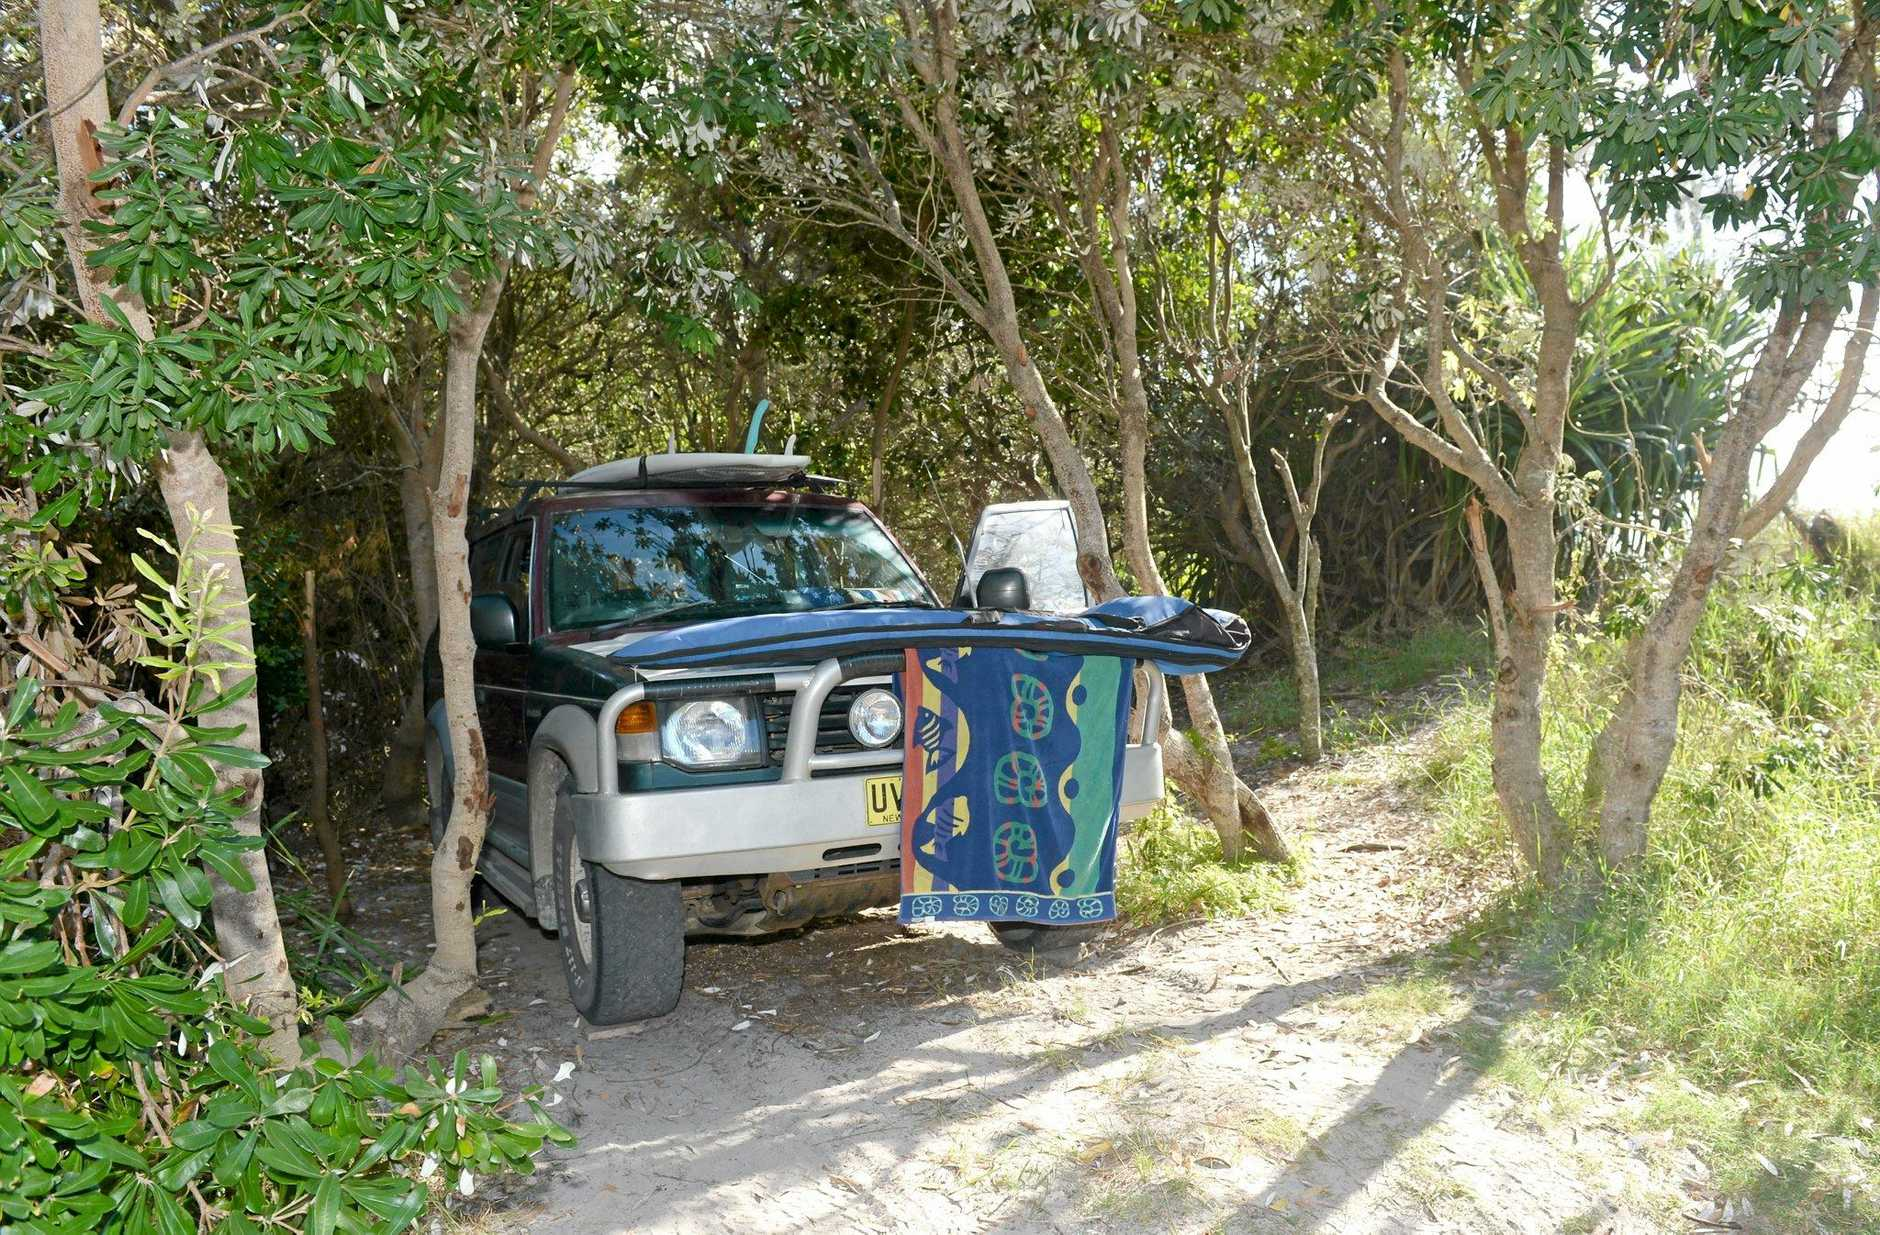 A local says this man has been camping illegally at Black Rocks for six months.